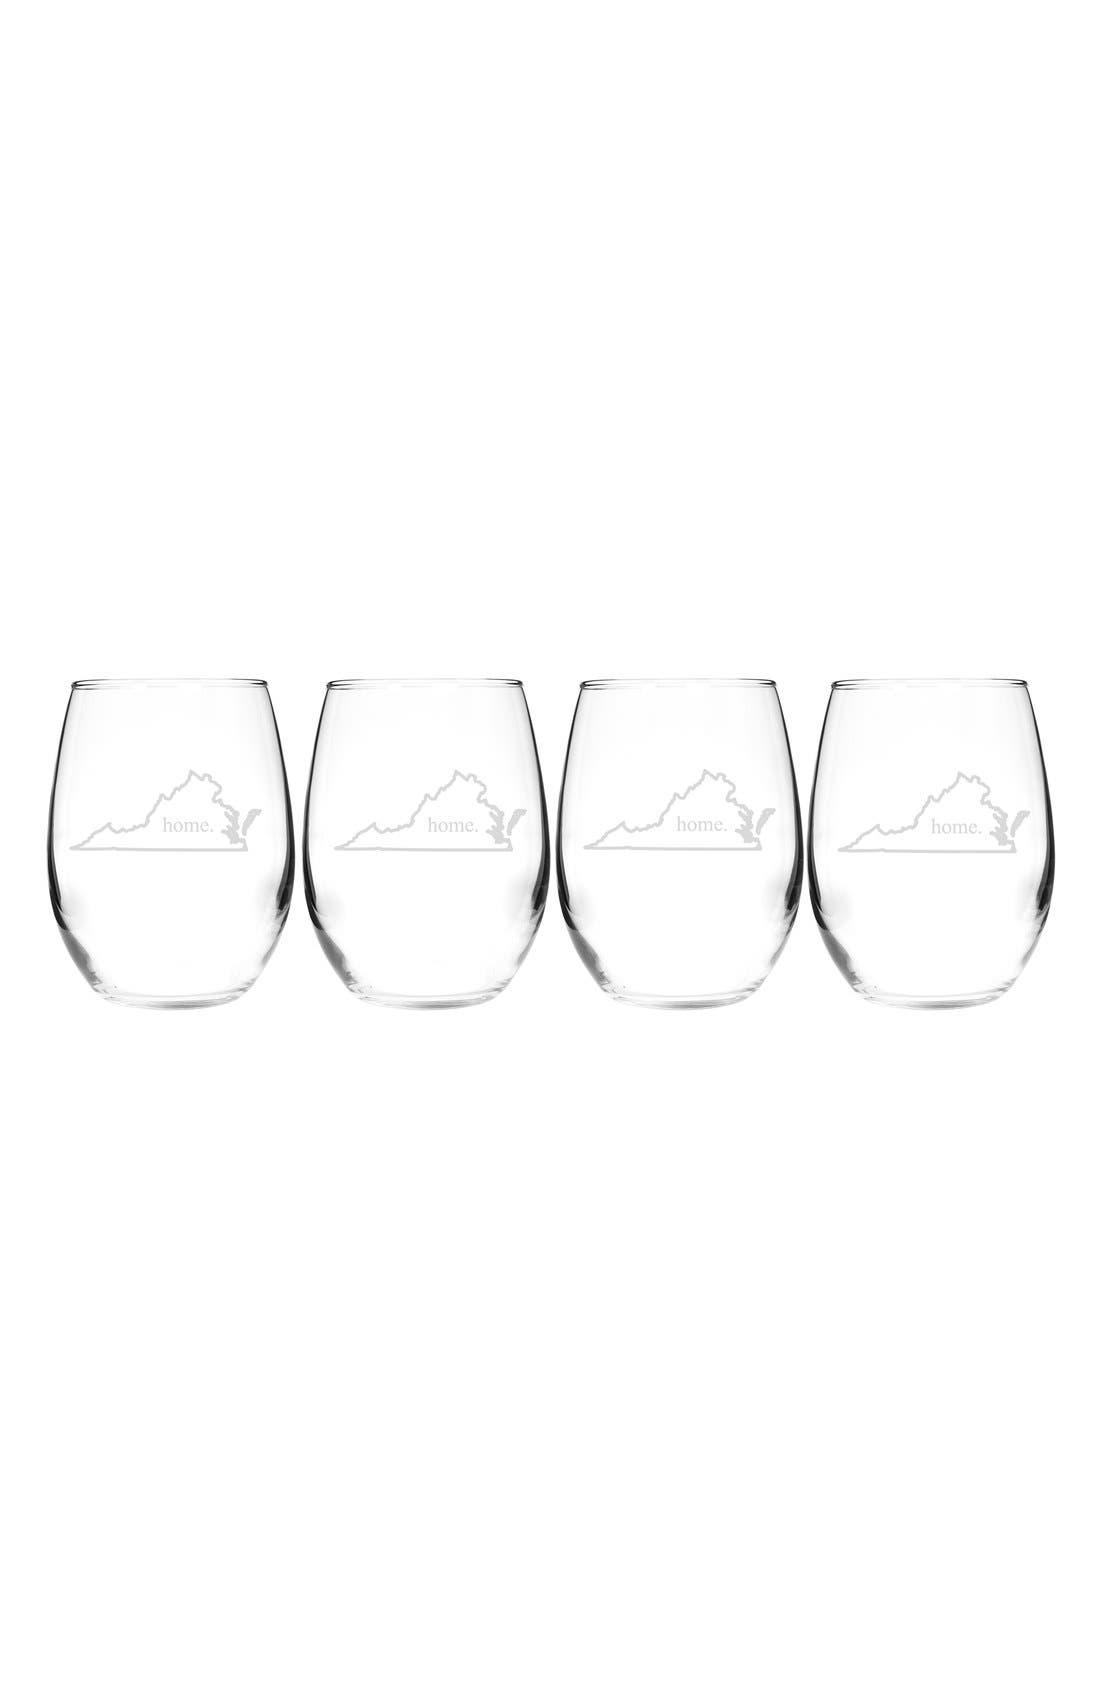 Home State Set of 4 Stemless Wine Glasses,                             Main thumbnail 45, color,